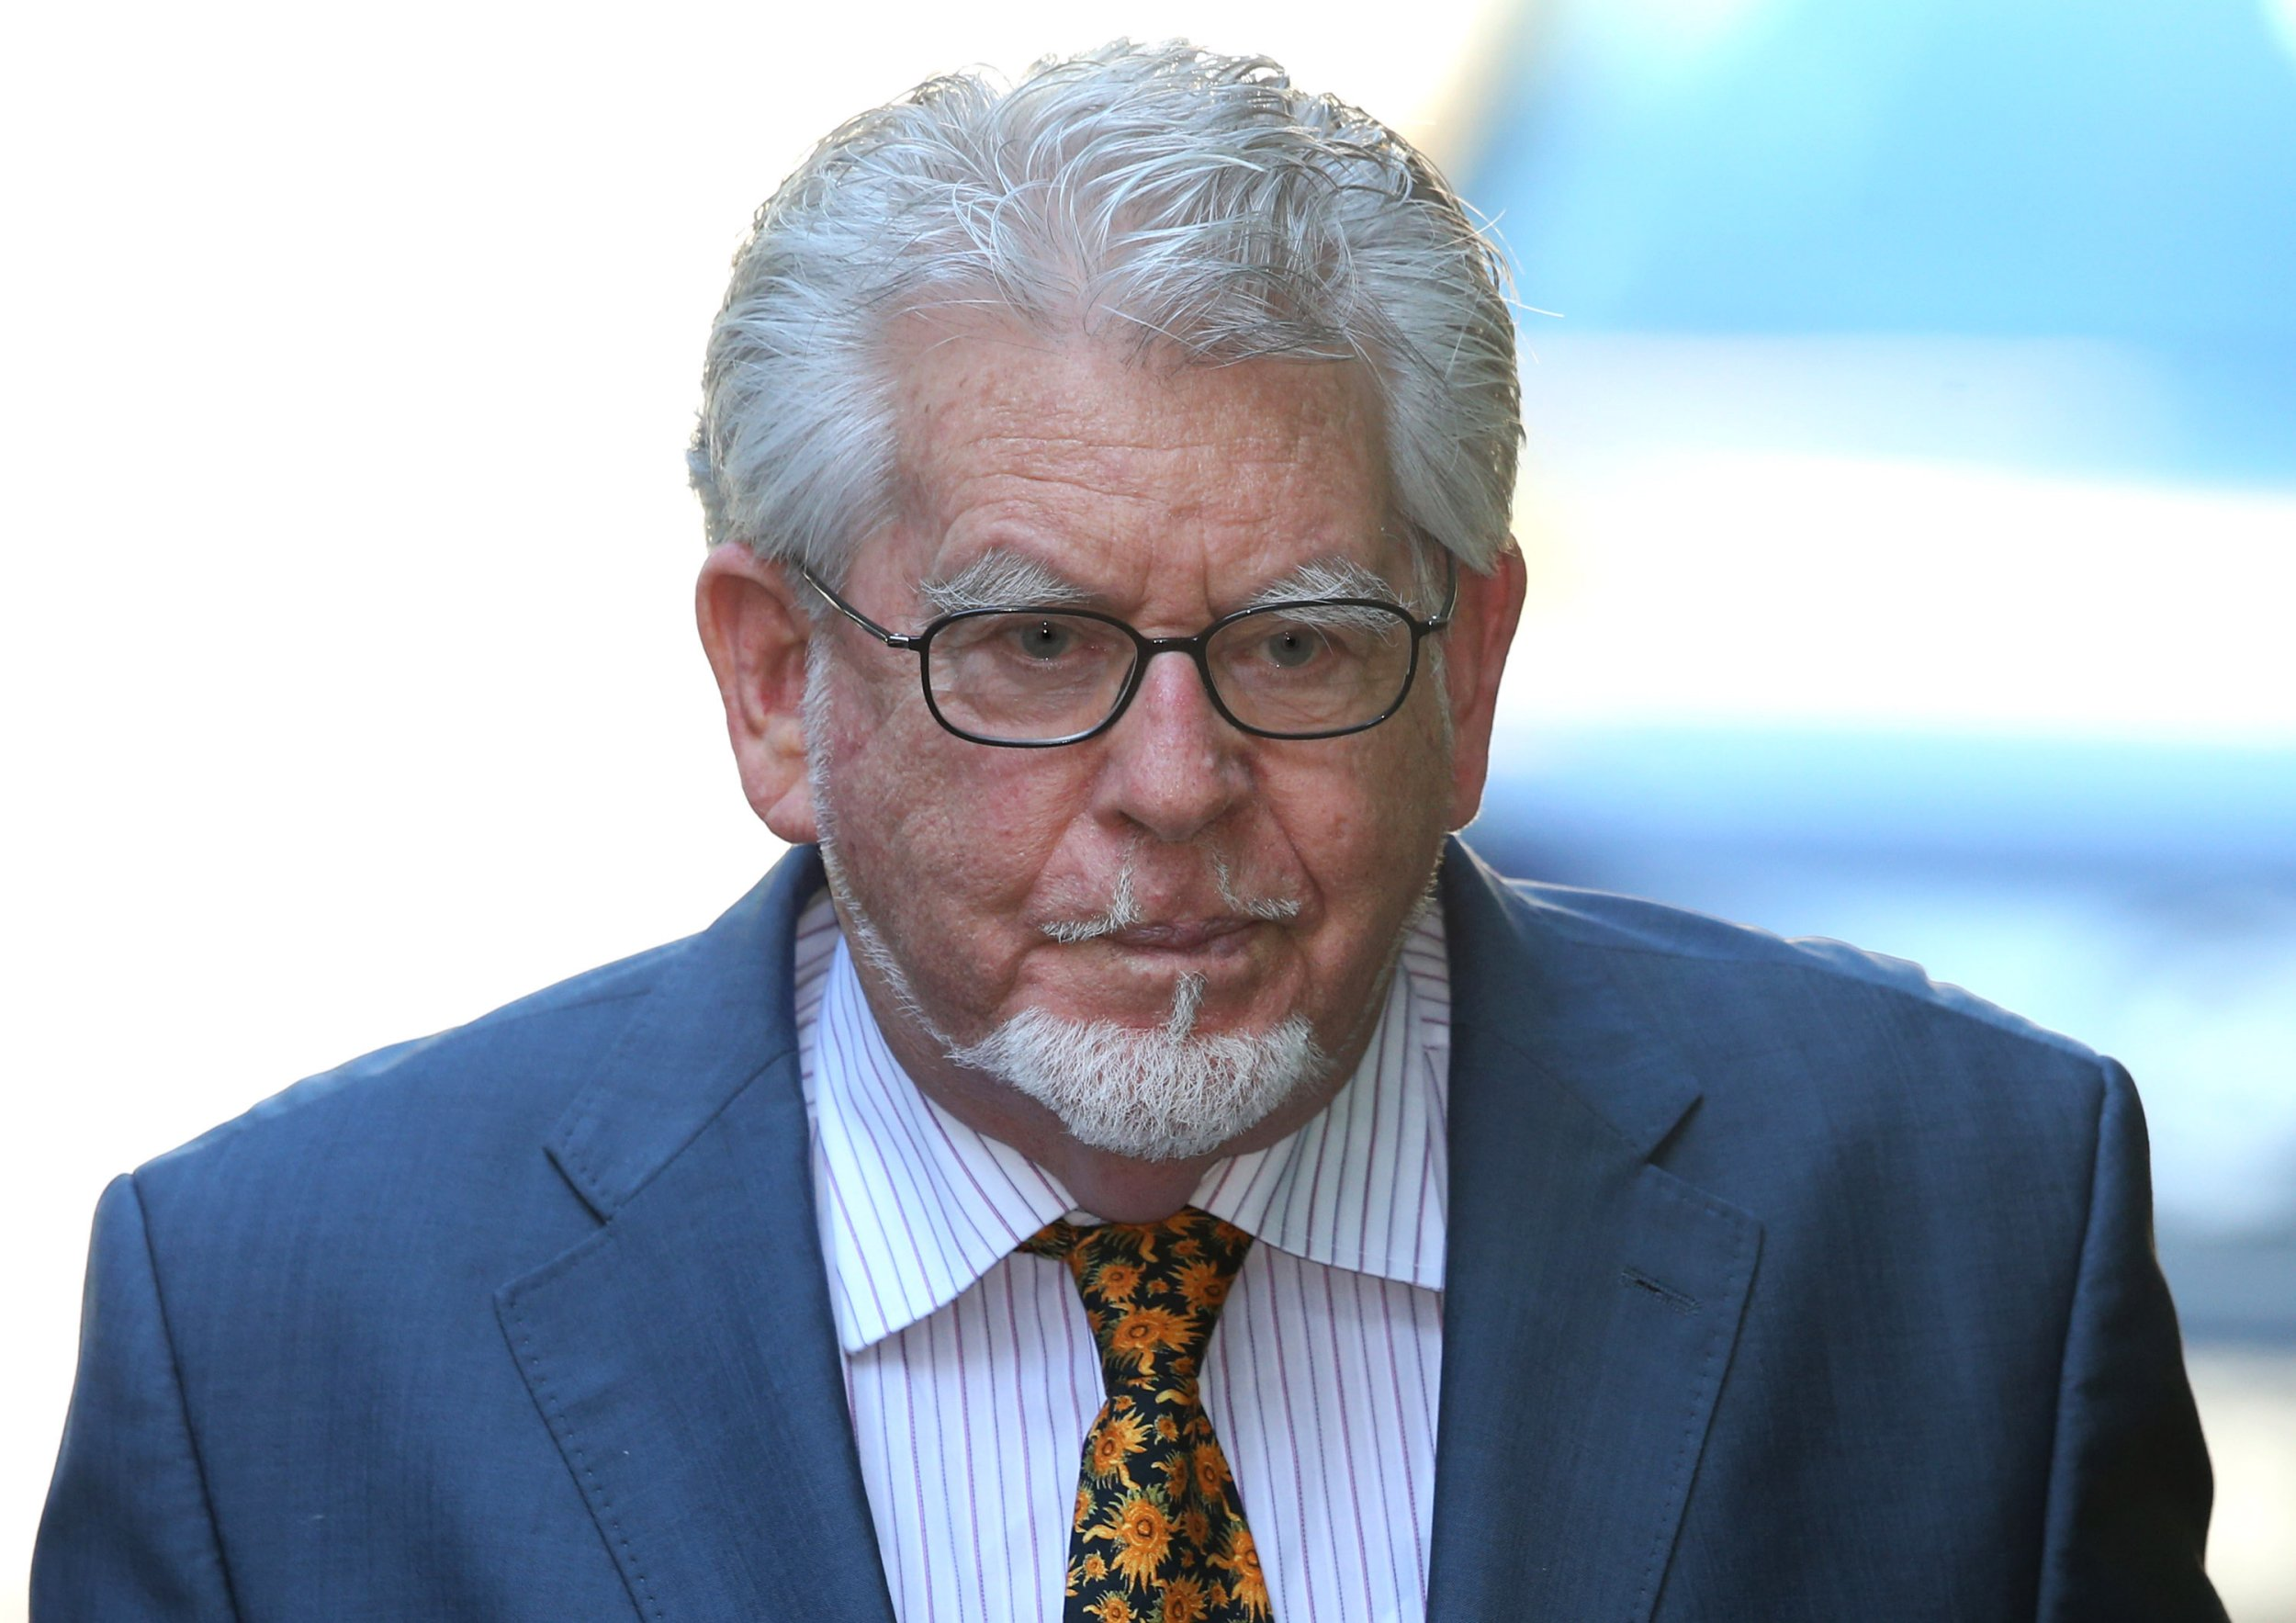 Rolf Harris pleads not guilty to new indecent and sex assault charges